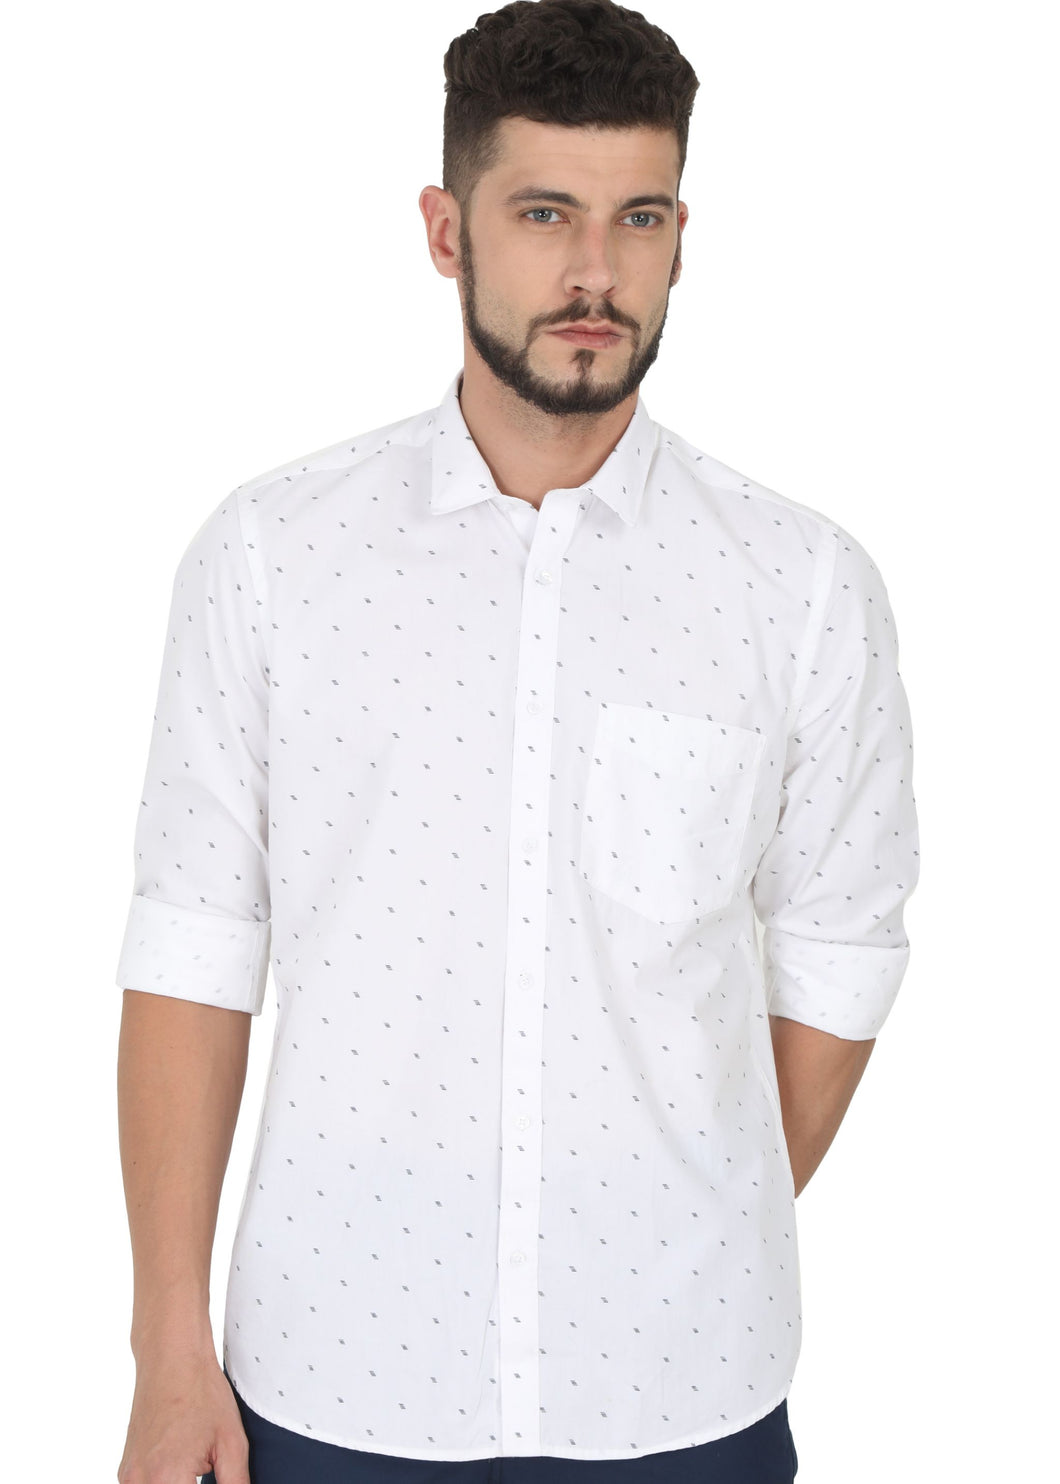 Tusok-minimalVacation-Printed Shirtimage-White Polka (1)